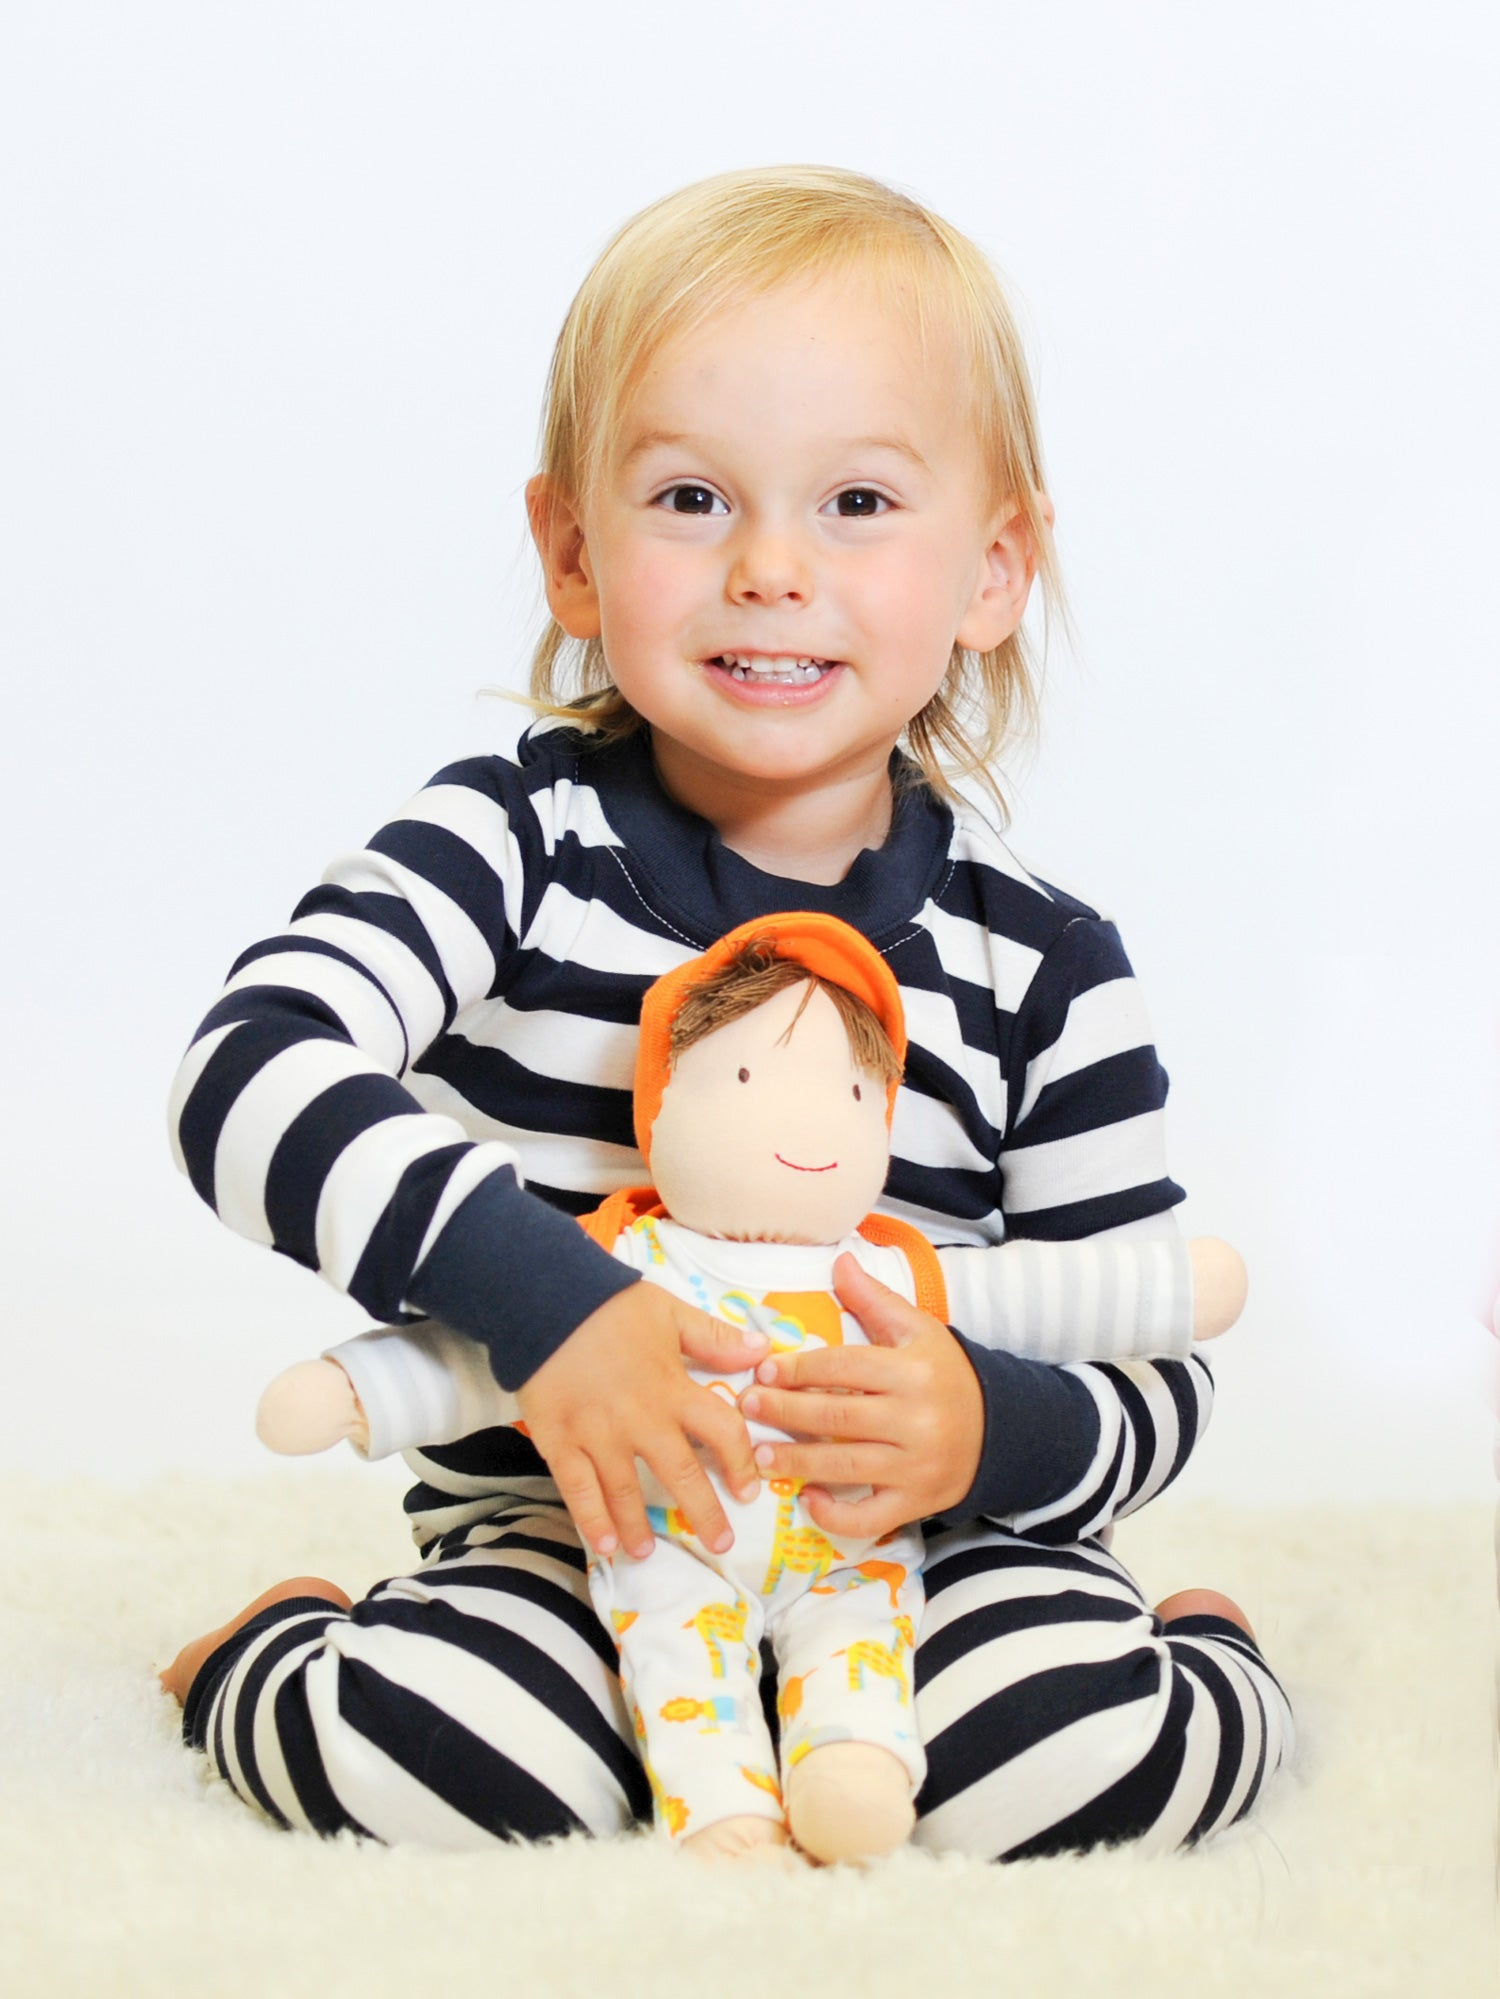 Jack Dress Up Doll - Safari Print